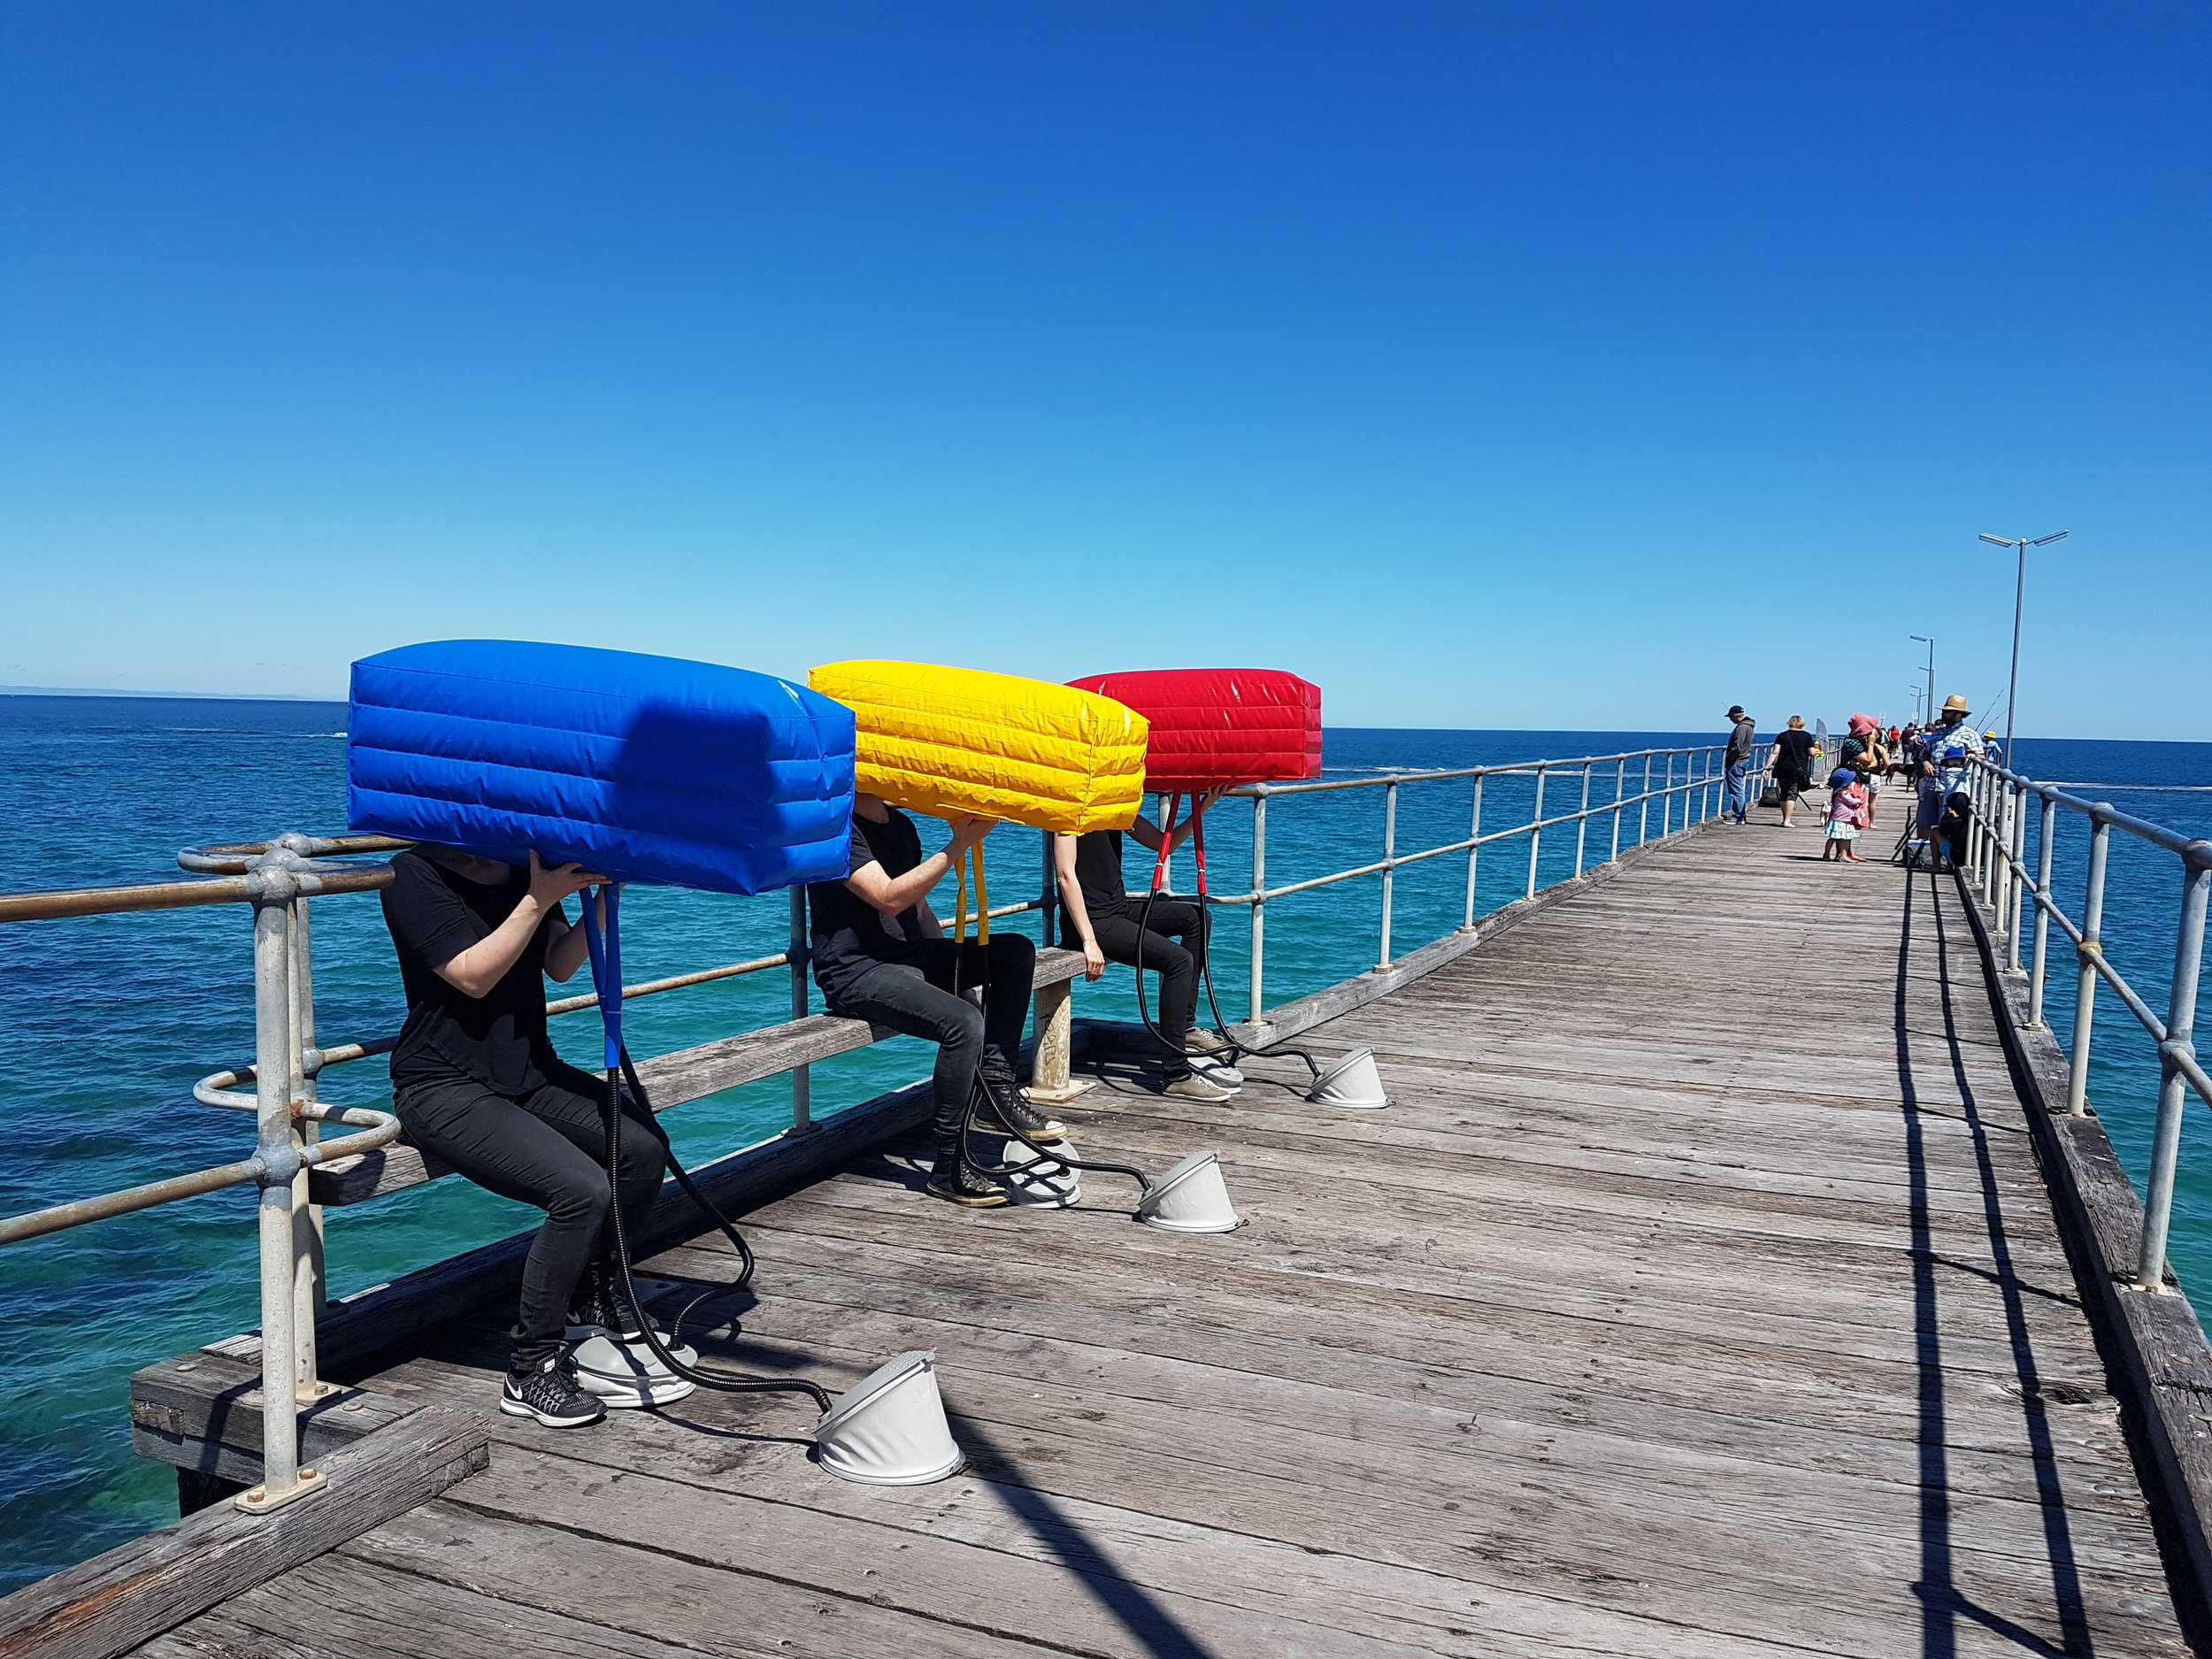 David Cross ' 'Trio' at Port Norlunga Jetty